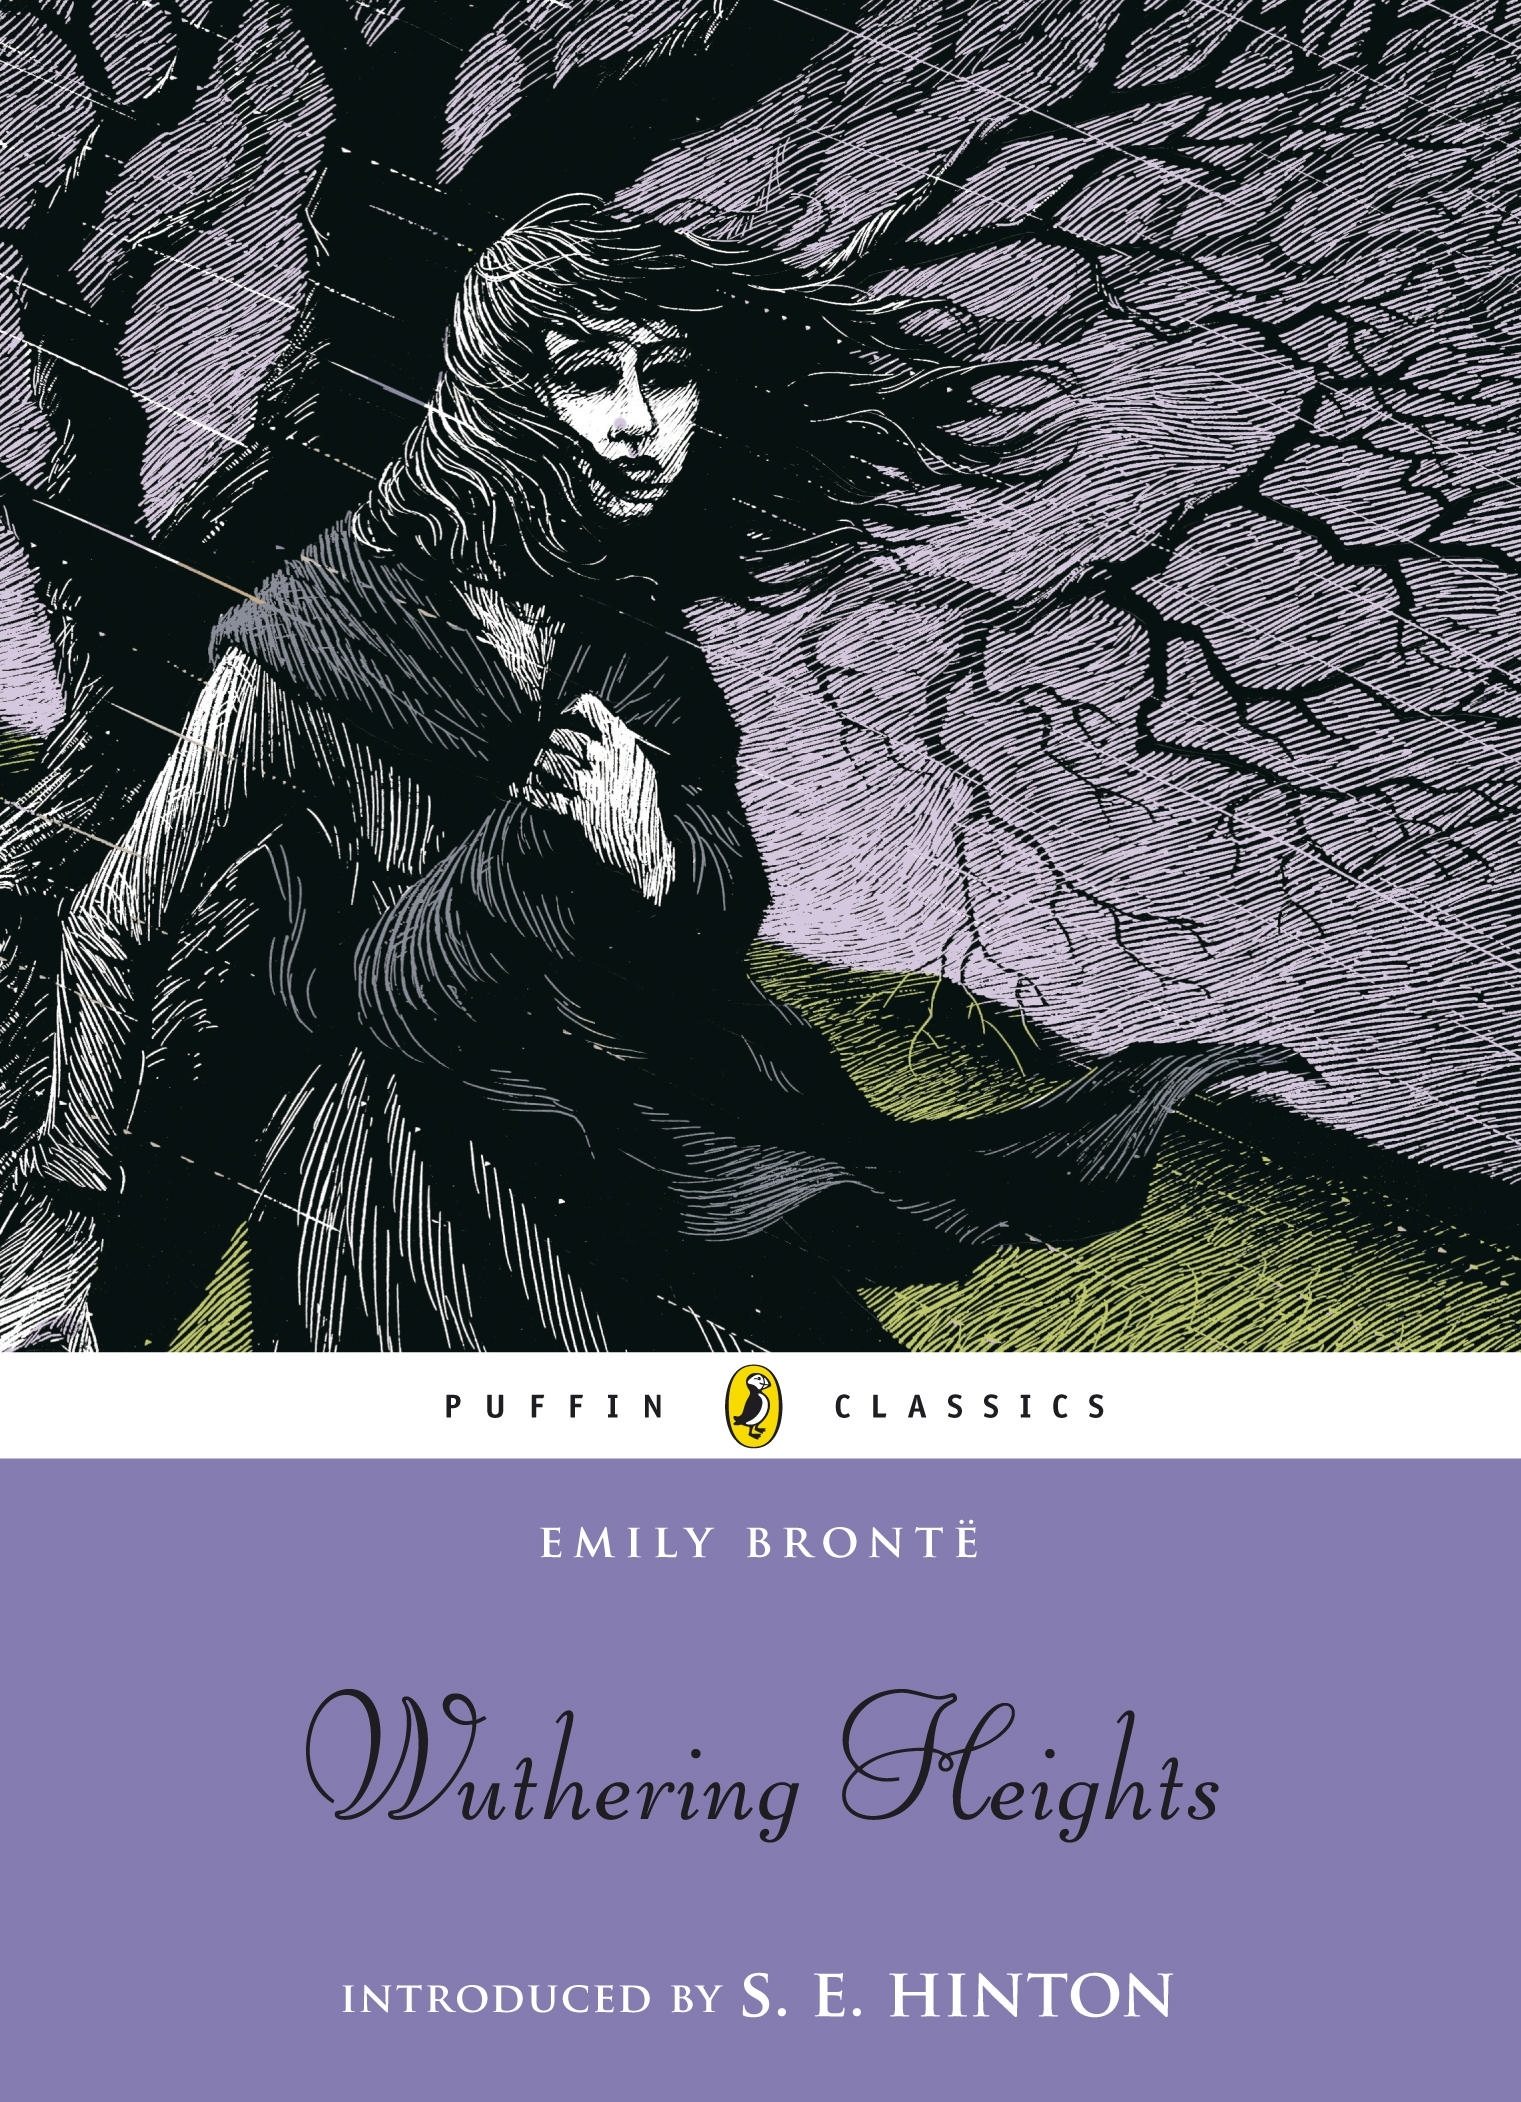 nelly dean as a reliable narrator in the novel wuthering heights by emily bronte A new round of classic rewrites, from austen to bront nelly dean: a return to wuthering heights by alison case the narrator of emily brontë's novel returns.